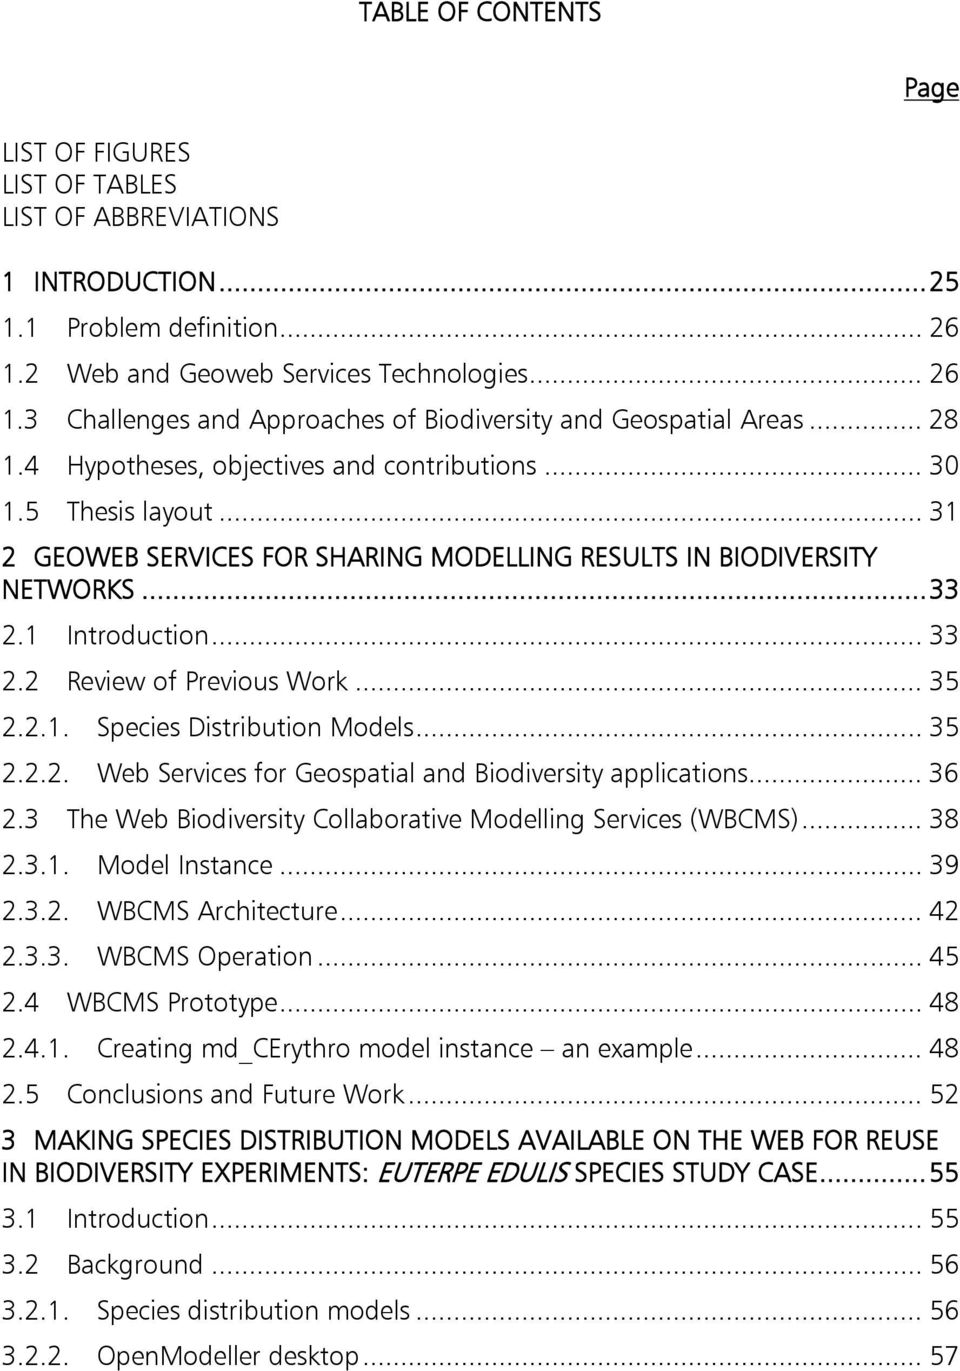 2 Review of Previous Work... 35 2.2.1. Species Distribution Models... 35 2.2.2. Web Services for Geospatial and Biodiversity applications... 36 2.